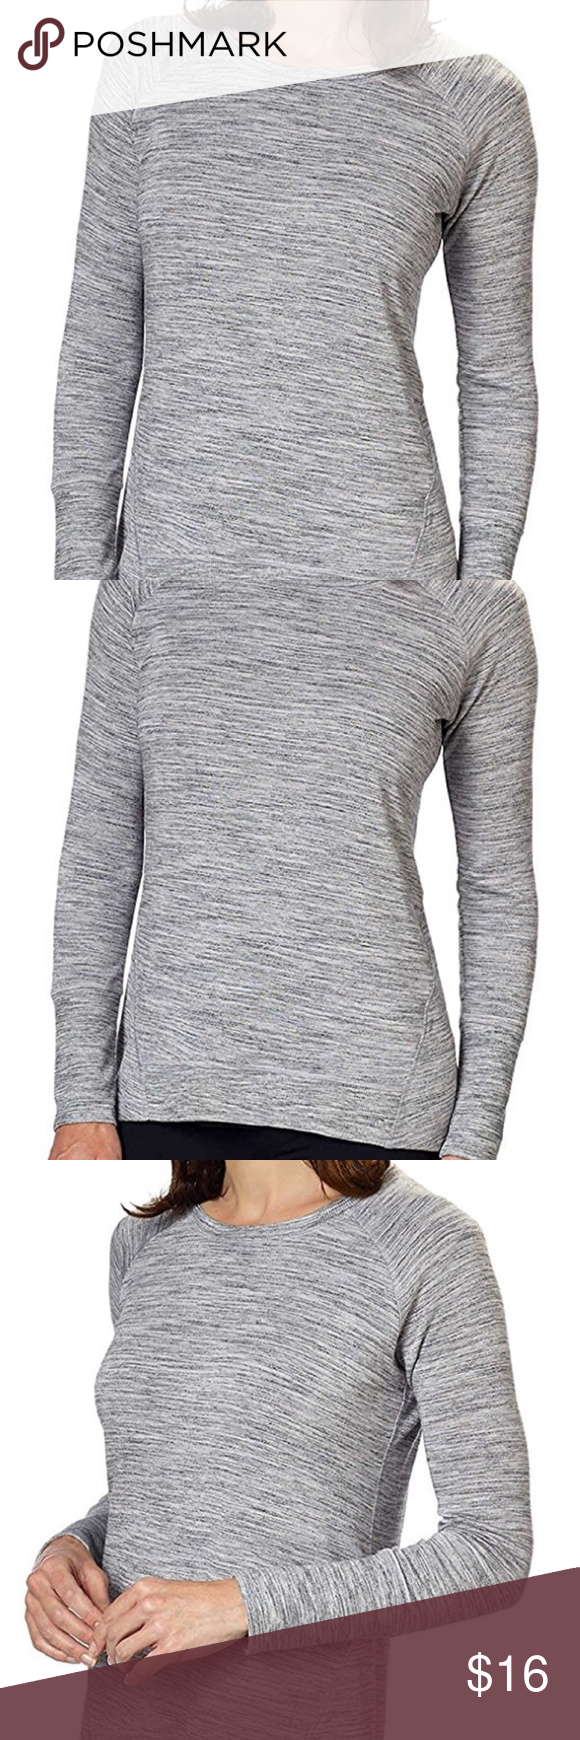 1a70faa8 Champion Lightweight High-Low Hemline Crew Neck Champion Ladies' Lightweight  High-Low Hemline